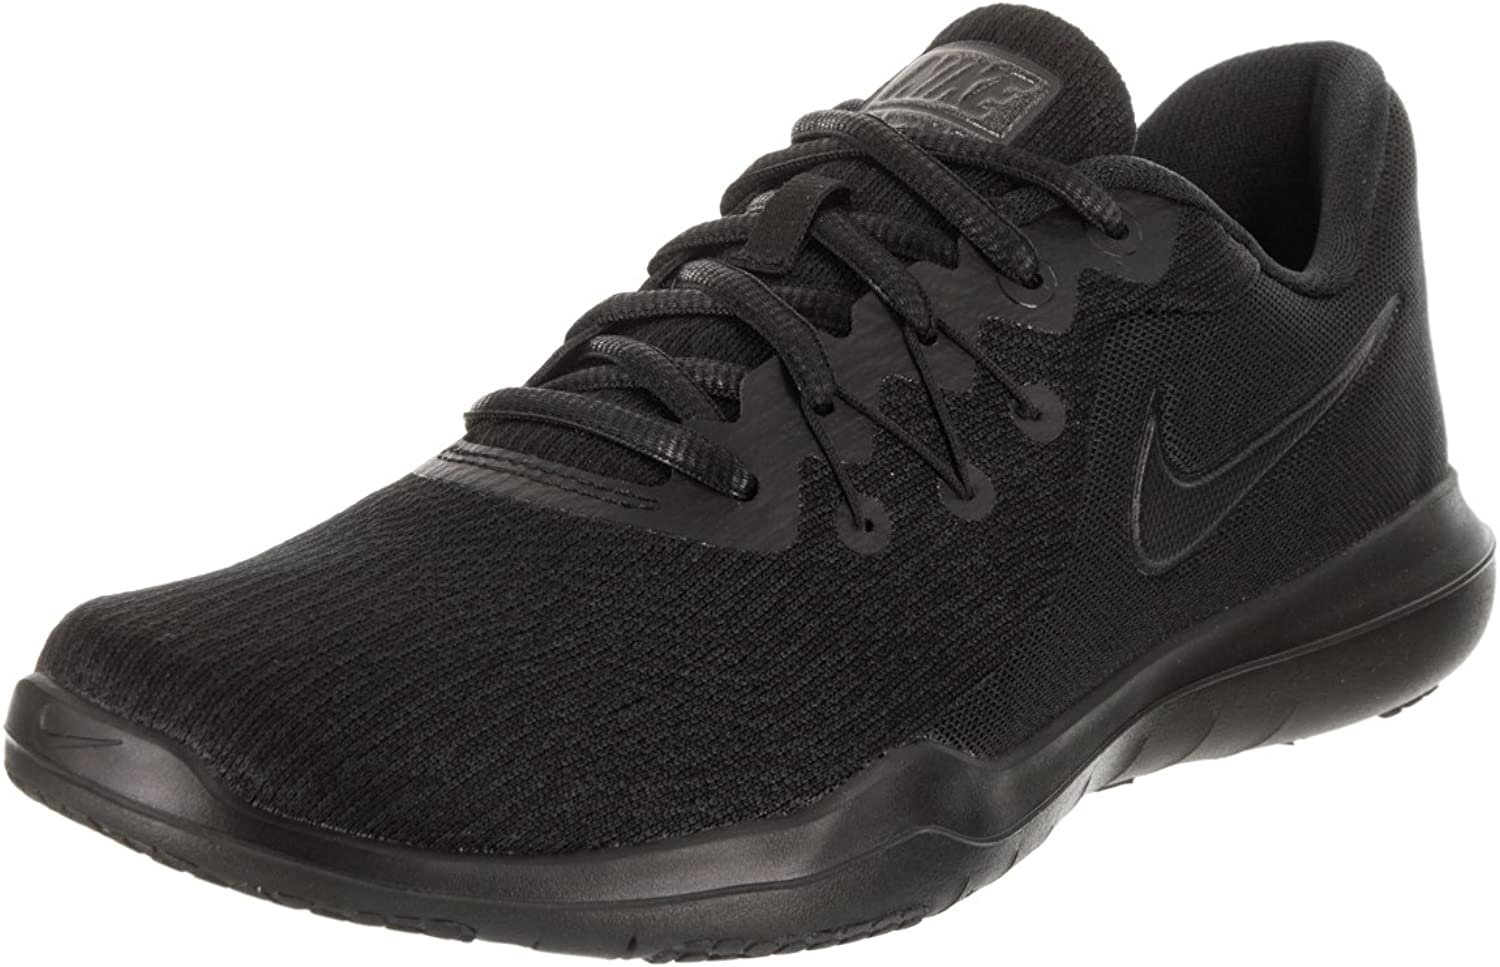 Nike Women's Flex Supreme Tr 6 Training shoes